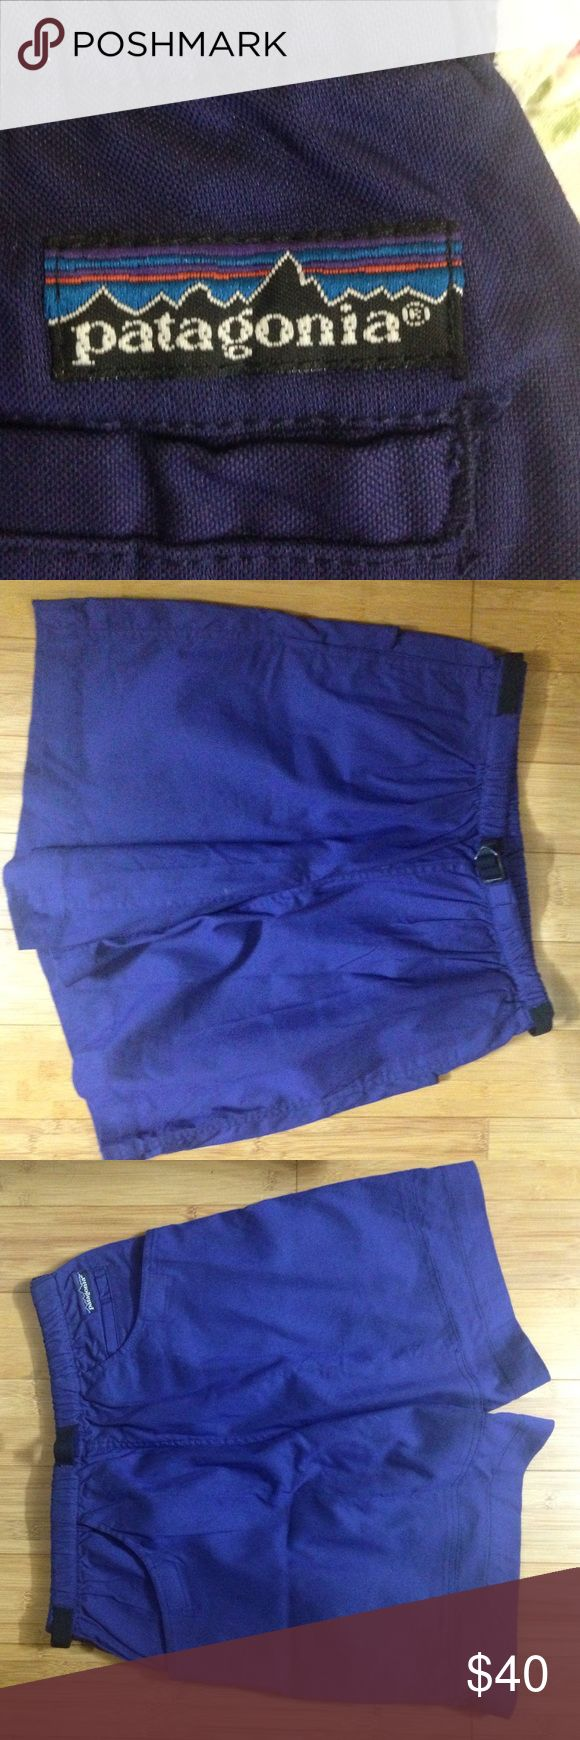 PATEGONIA men's shorts New without tags. Beautiful color, sort of a blueish purple. These are. Wry good quality shorts that only Pategonia knows Patagonia Shorts Hybrids